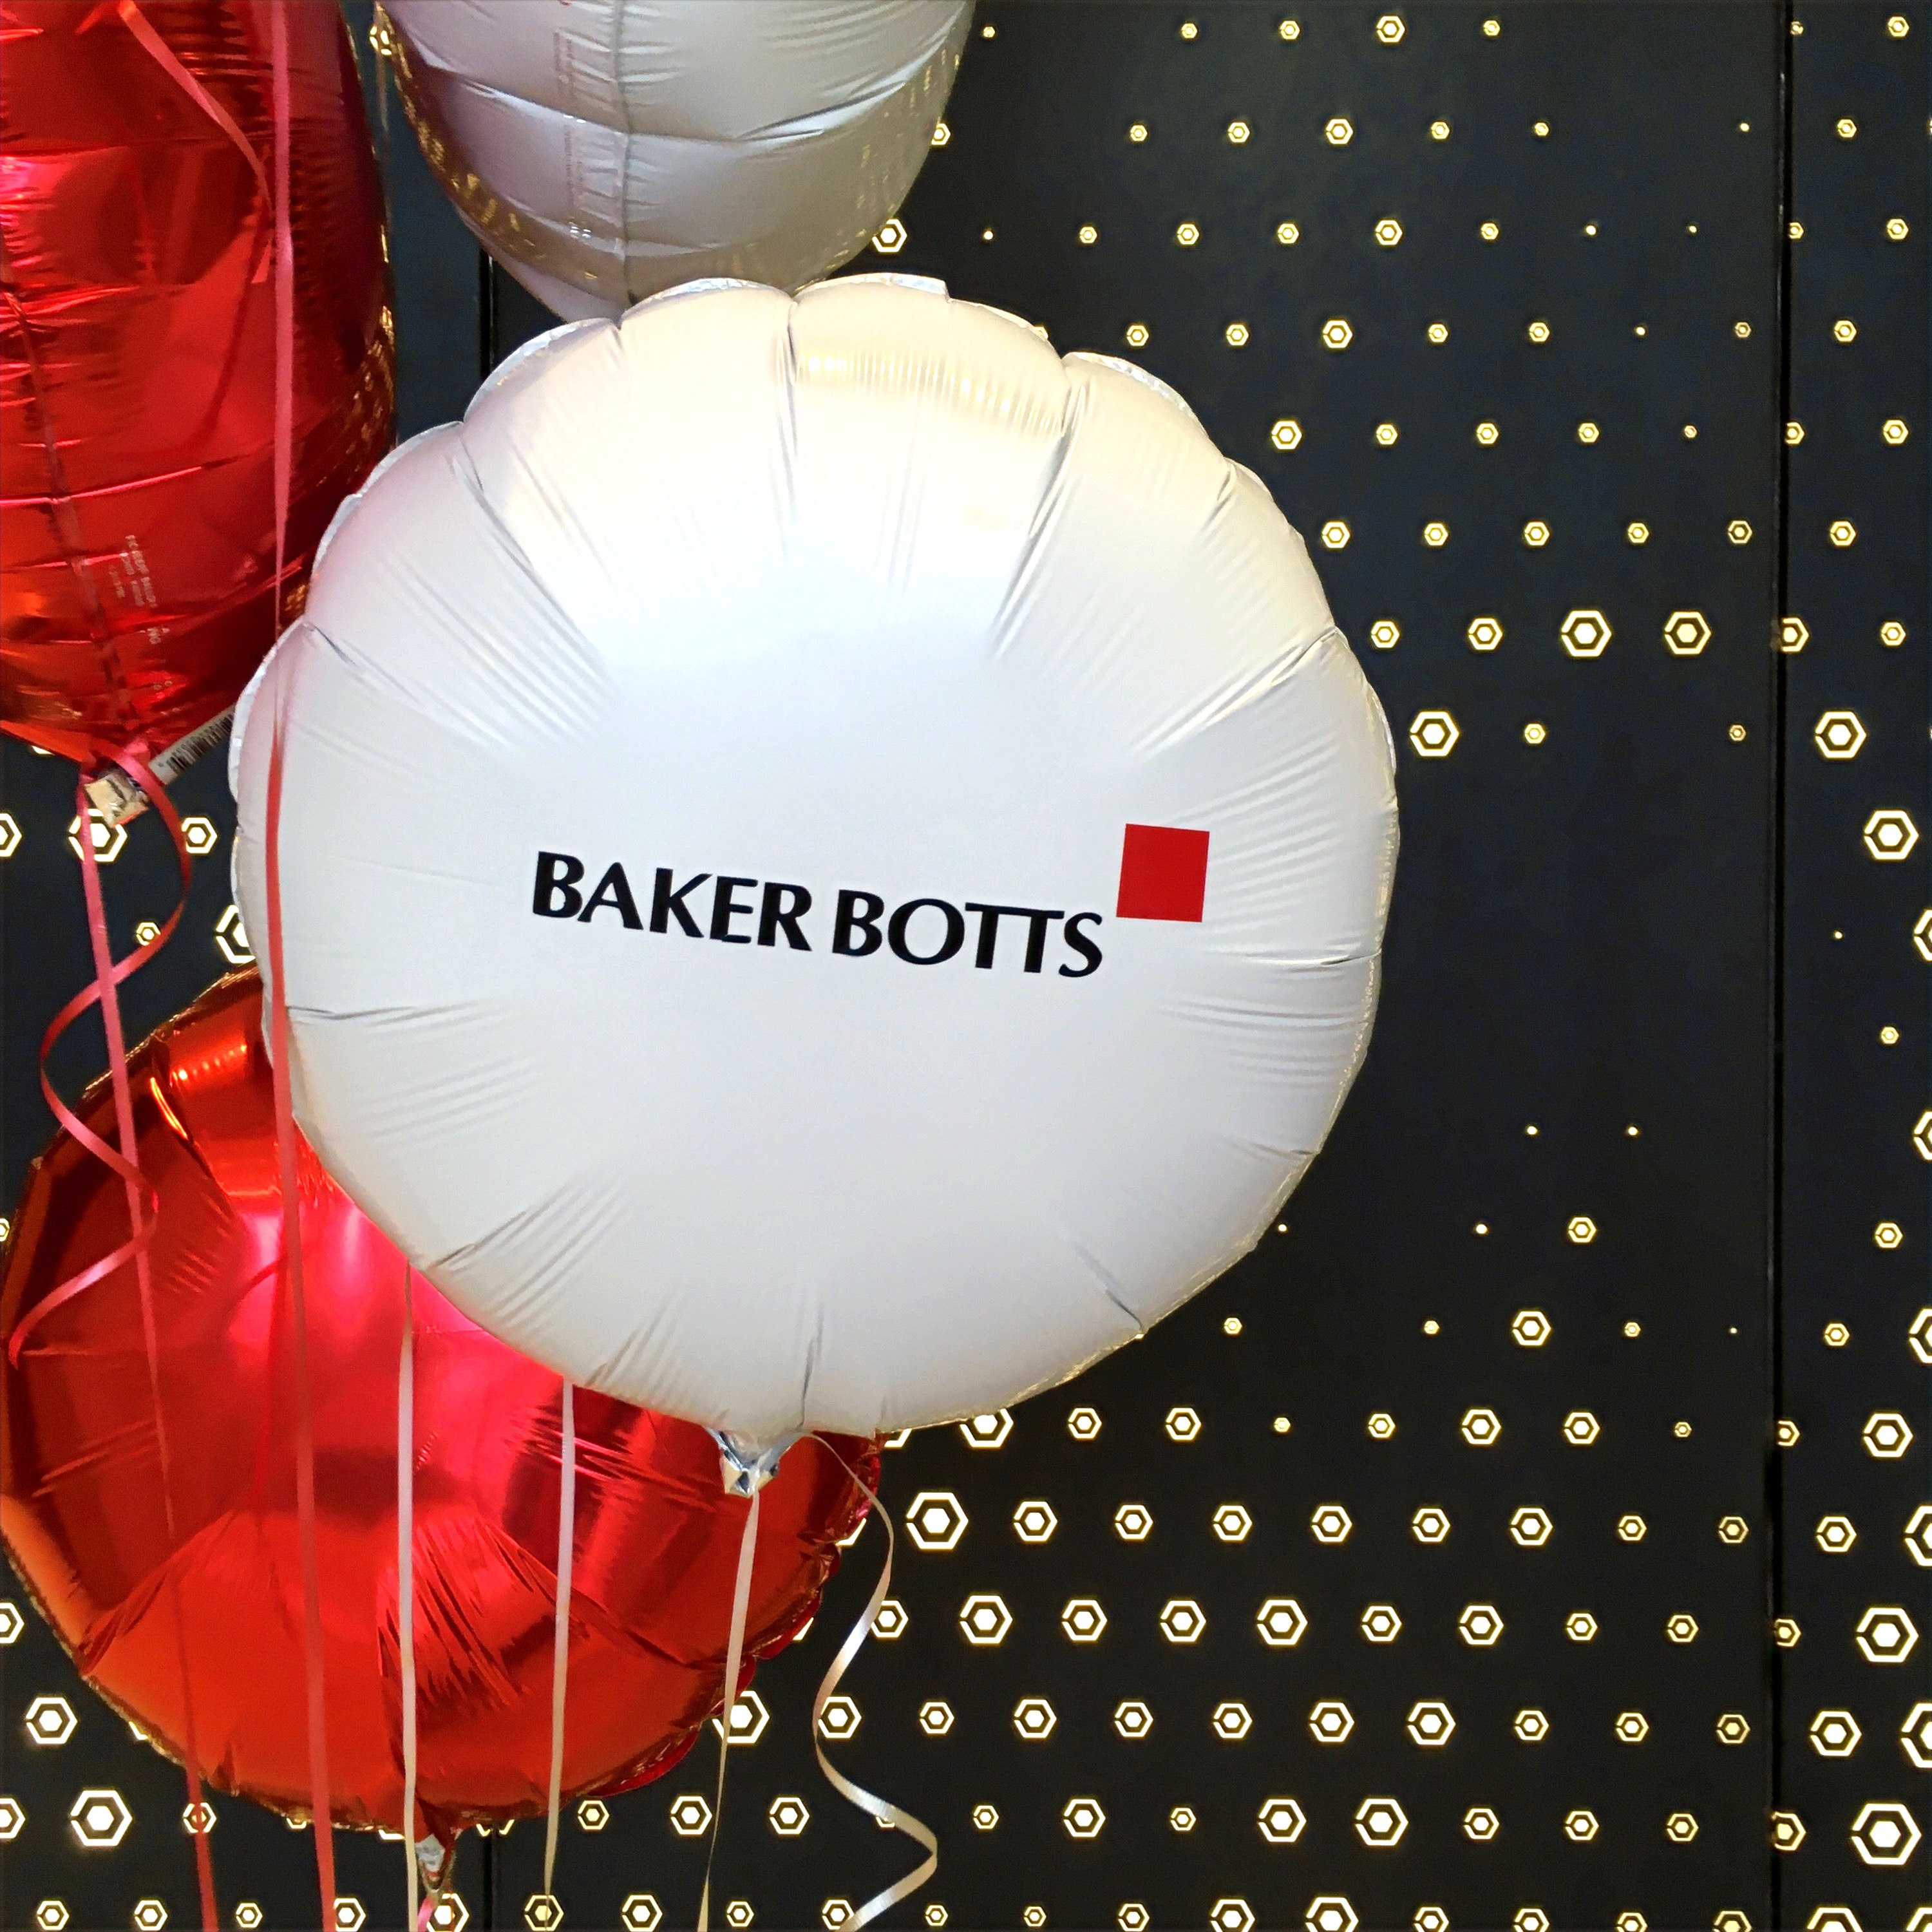 Corporate Branded Balloons | Washington DC | Balloon Zoom